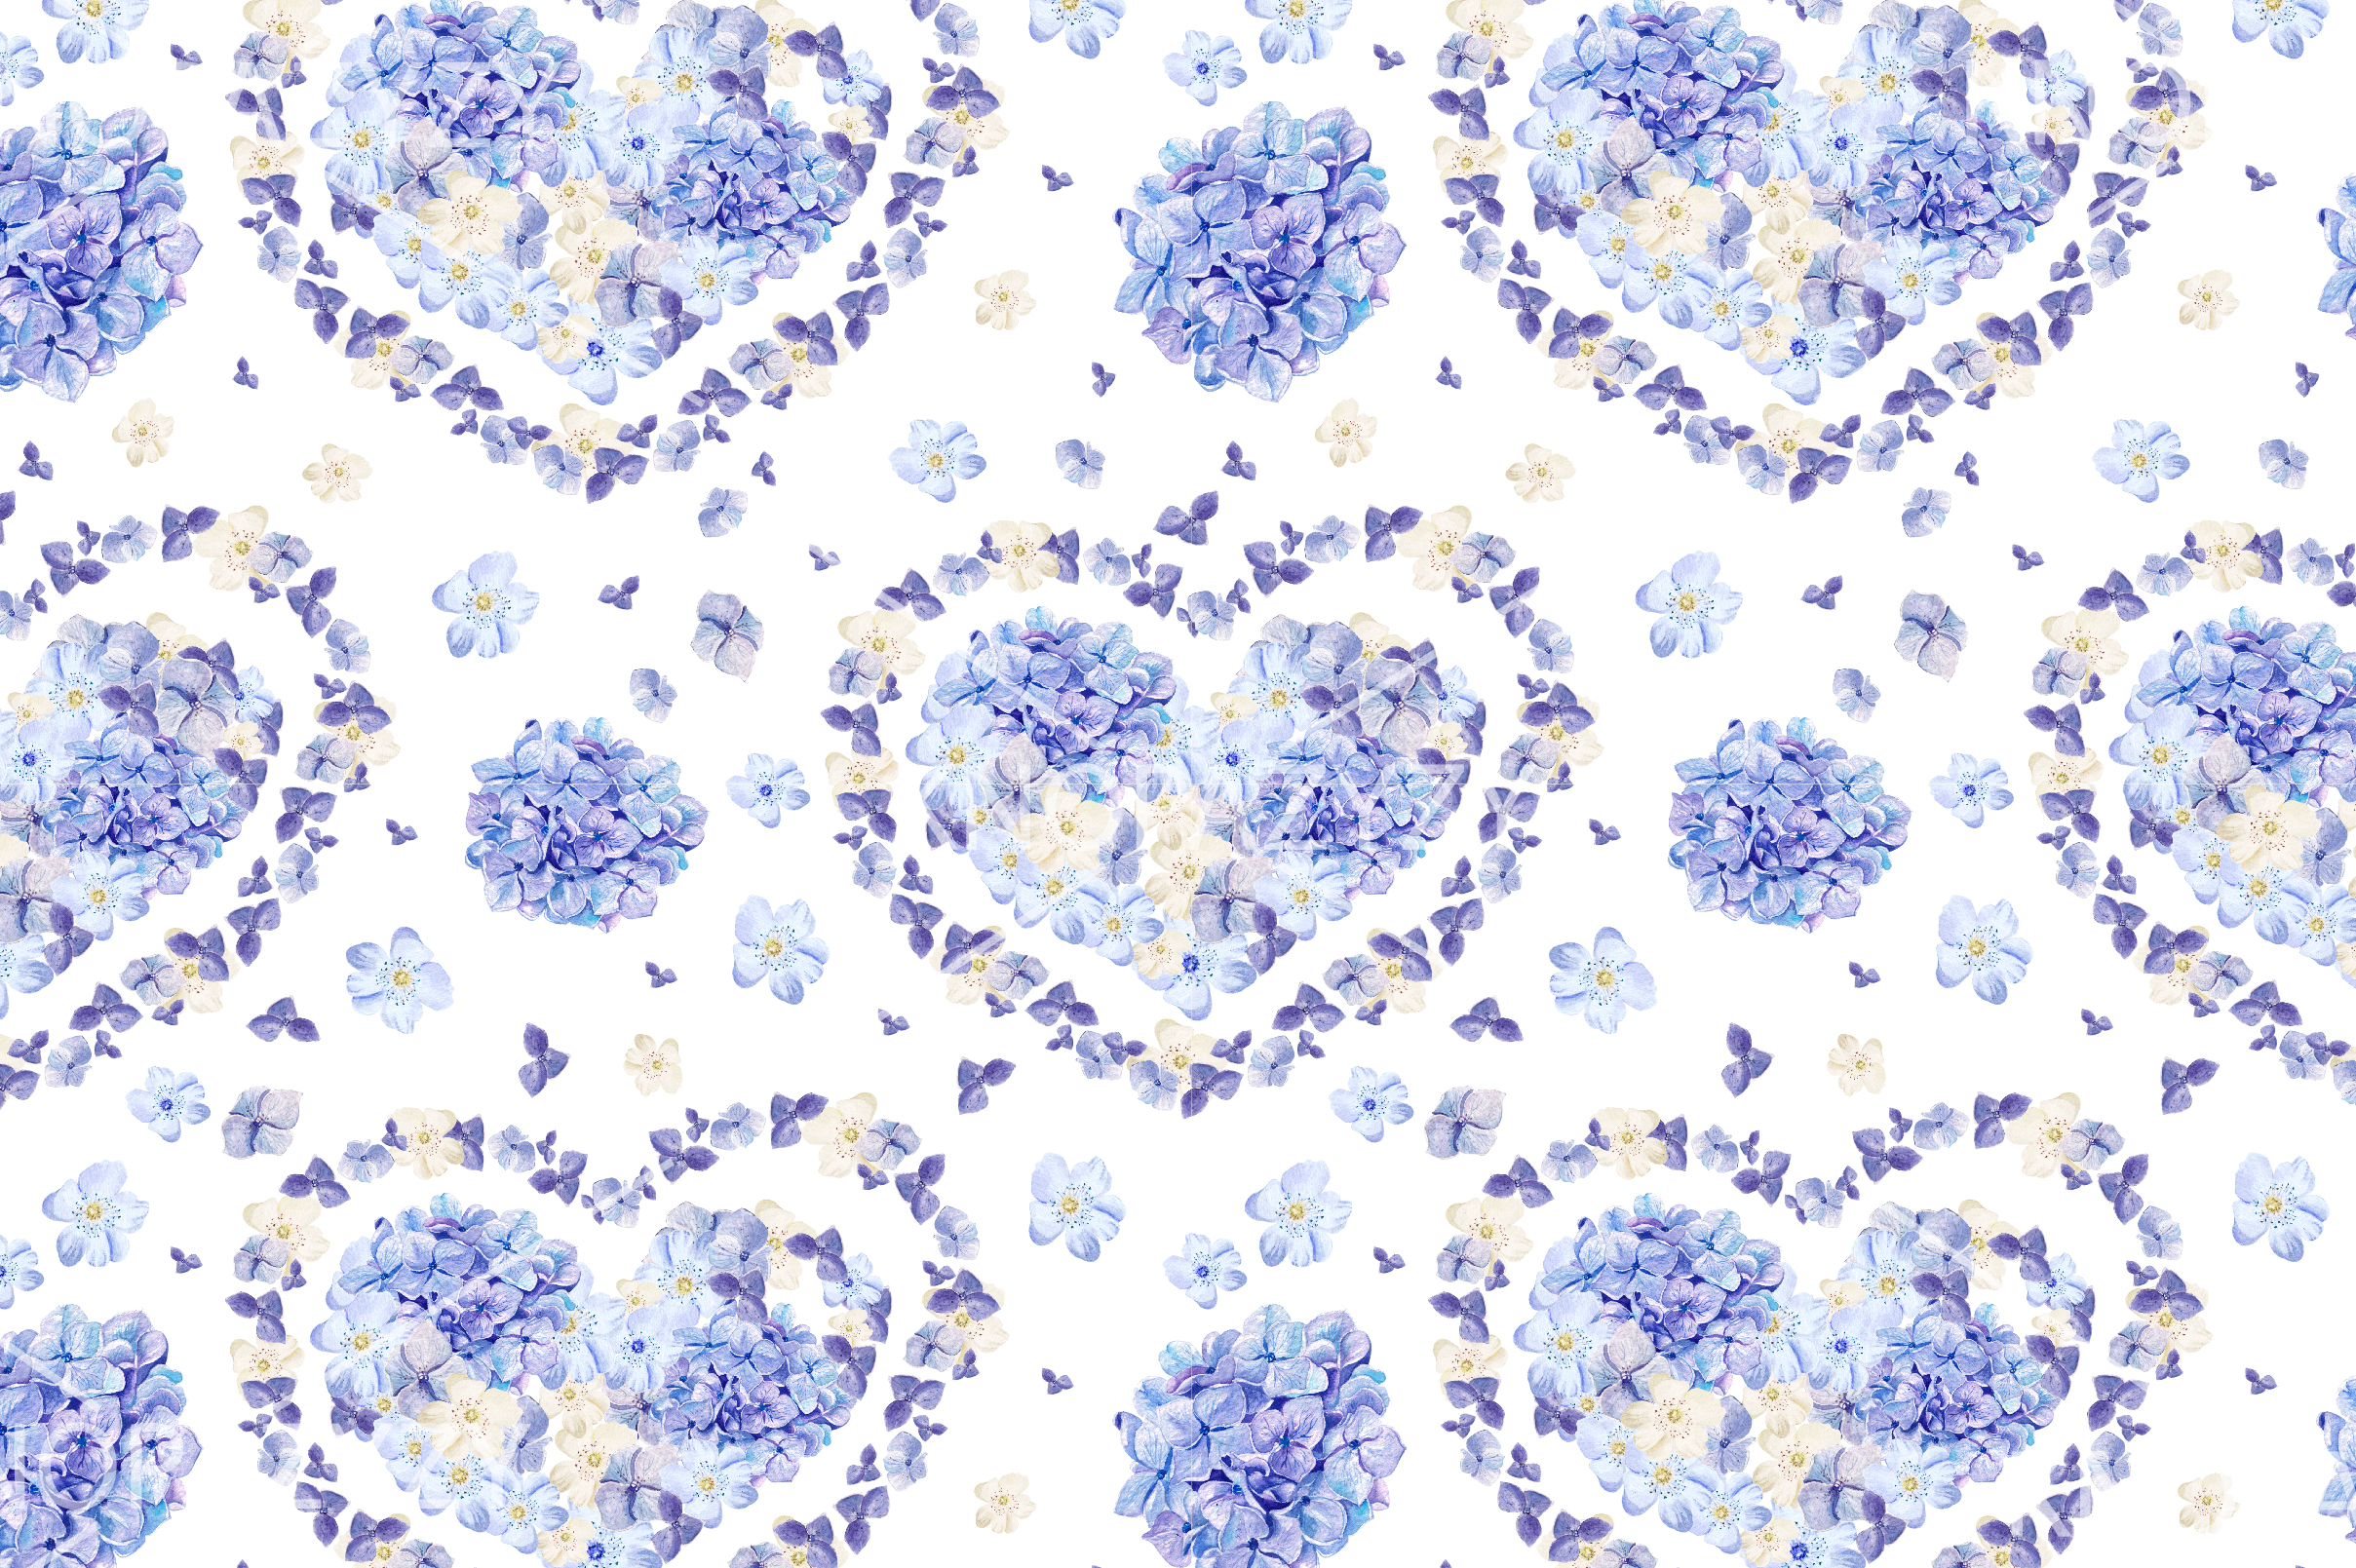 15 Hand Drawn Watercolor PATTERNS example image 11